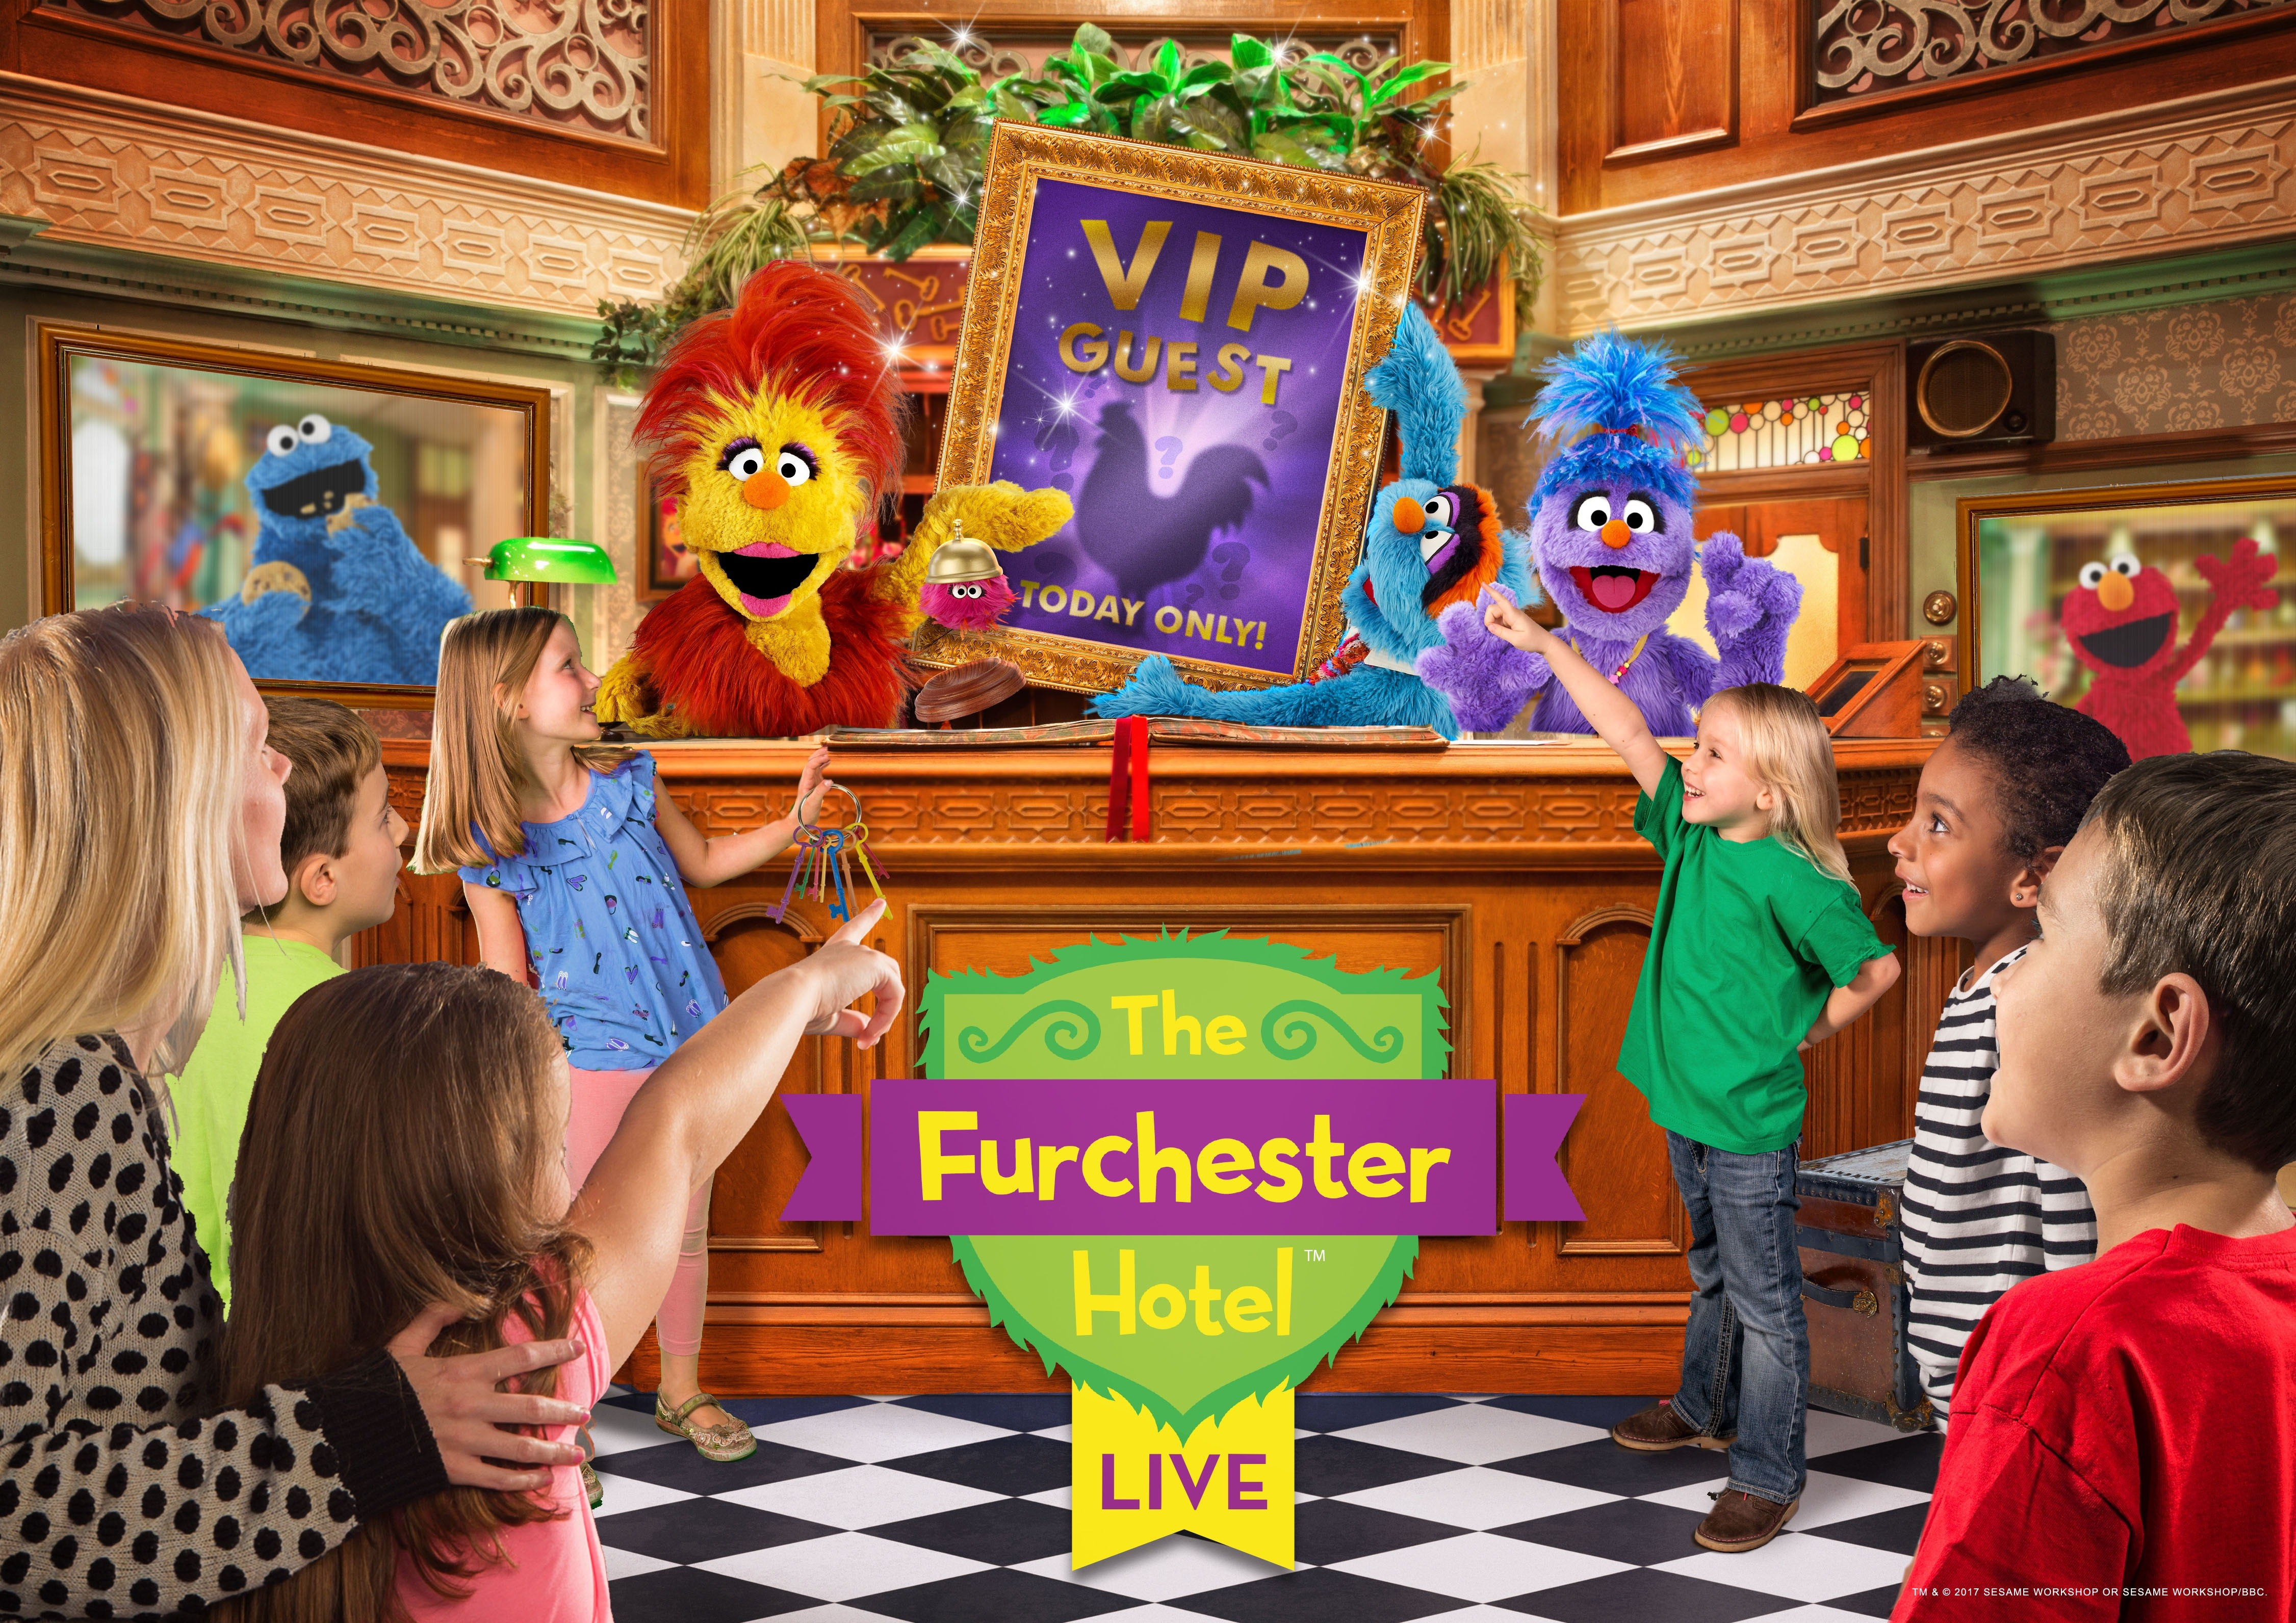 The Furchester Hotel Live Show joins Alton Towers Resort in 2017